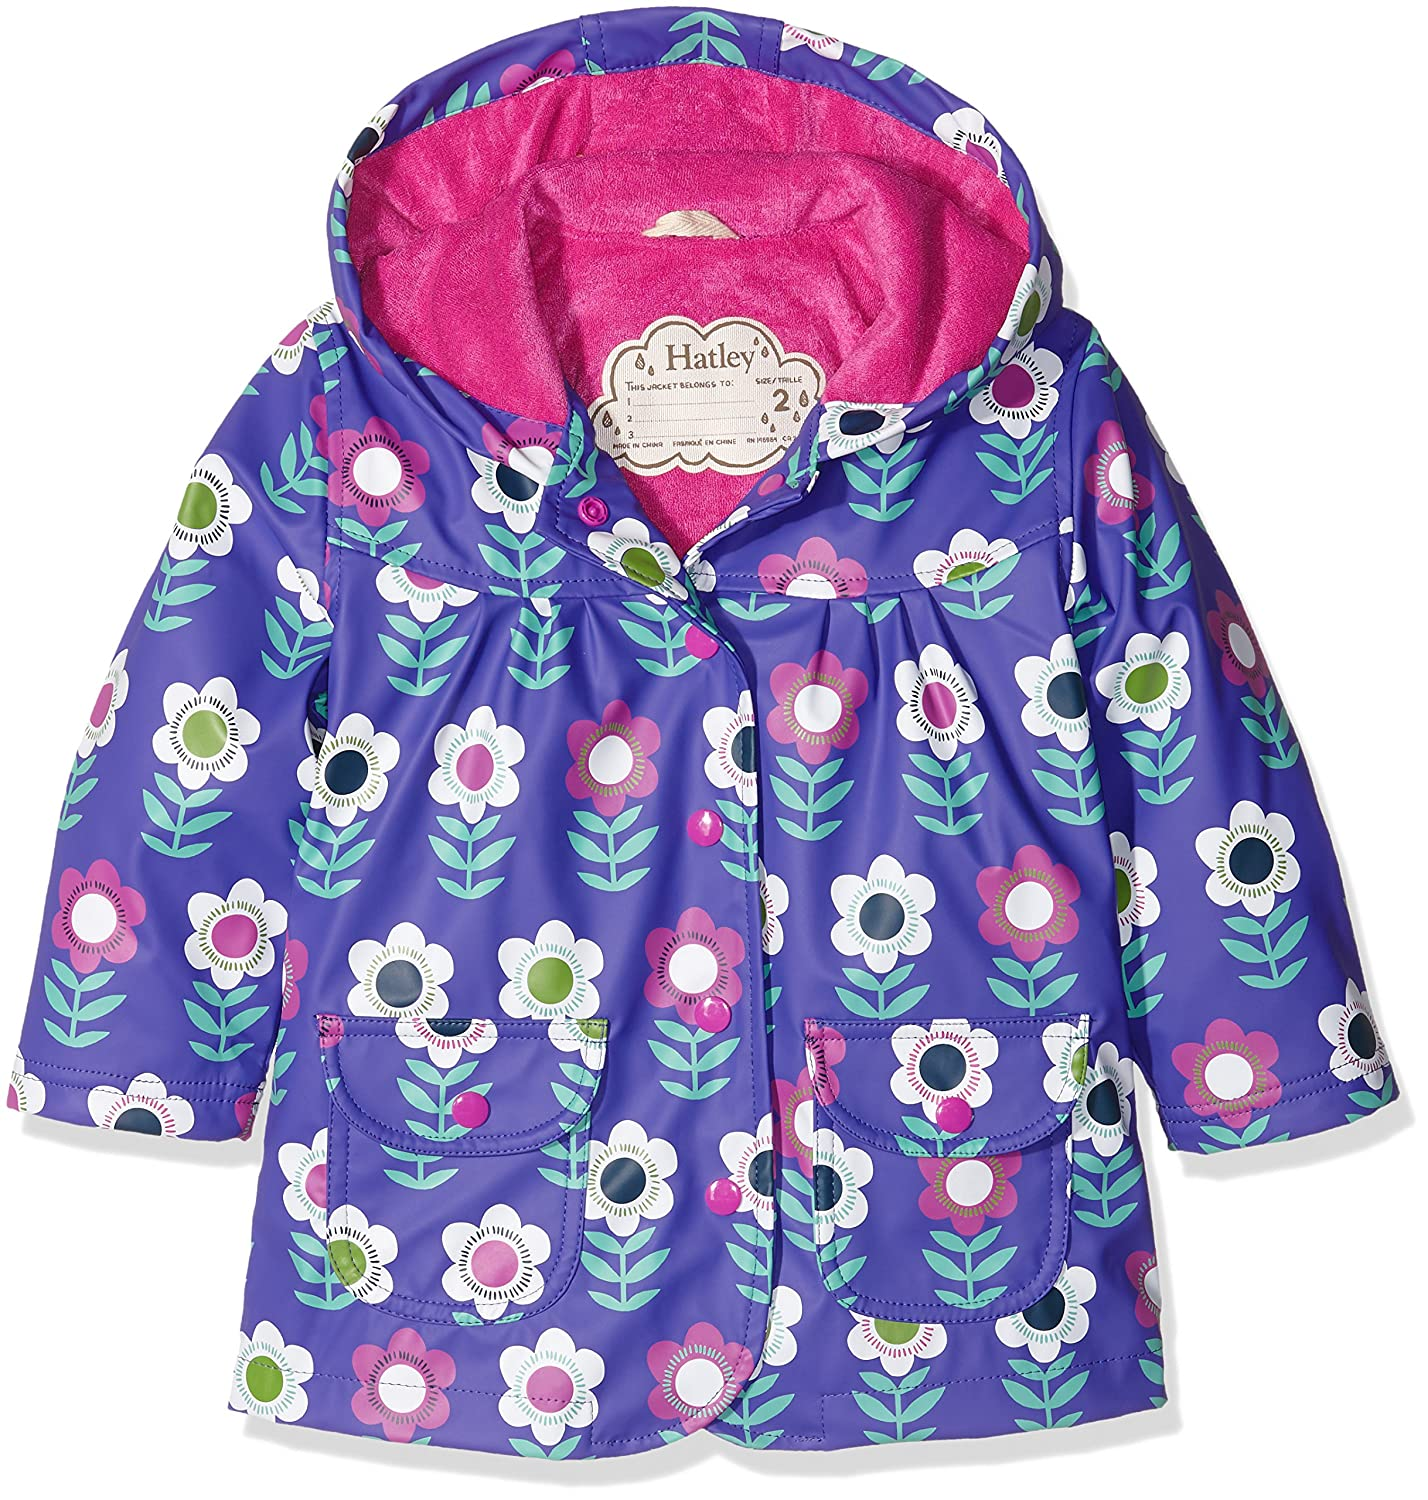 Hatley Girls' Classic Printed Raincoat Hatley Children' s Apparel RC5